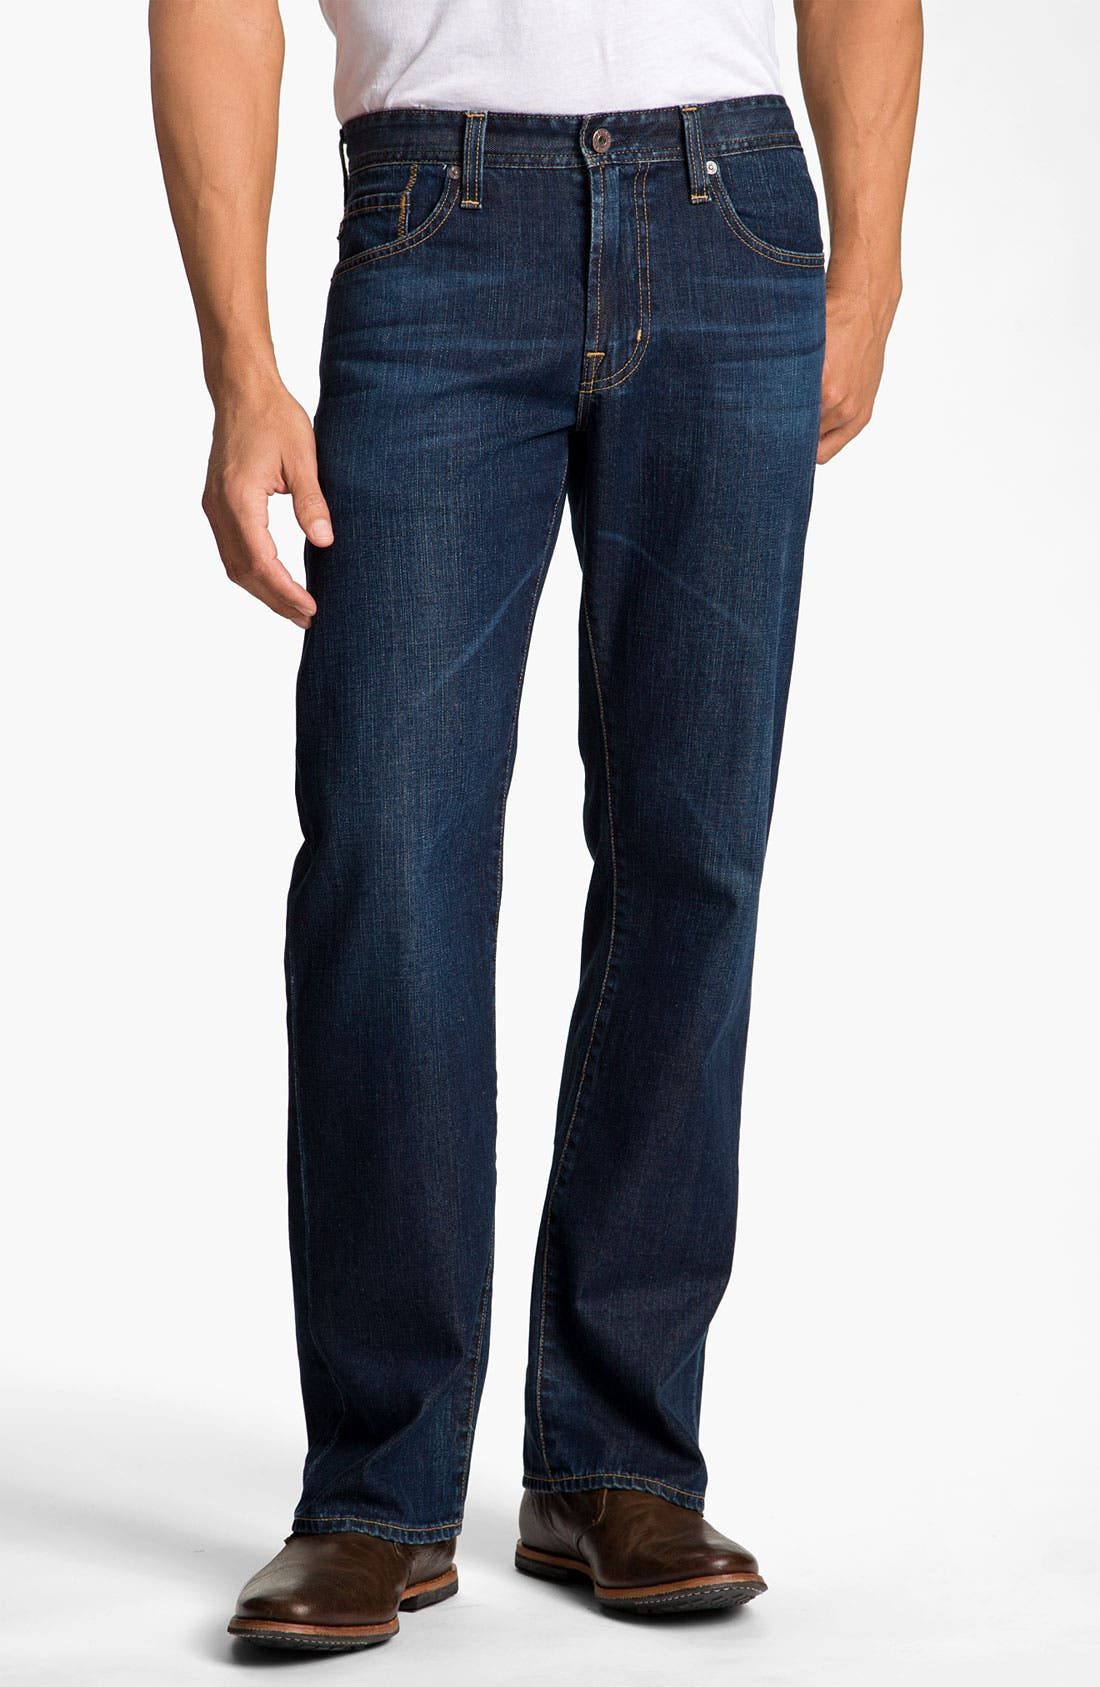 Alternate Image 1 Selected - AG Jeans 'Hero' Relaxed Fit Jeans (Vanguard)